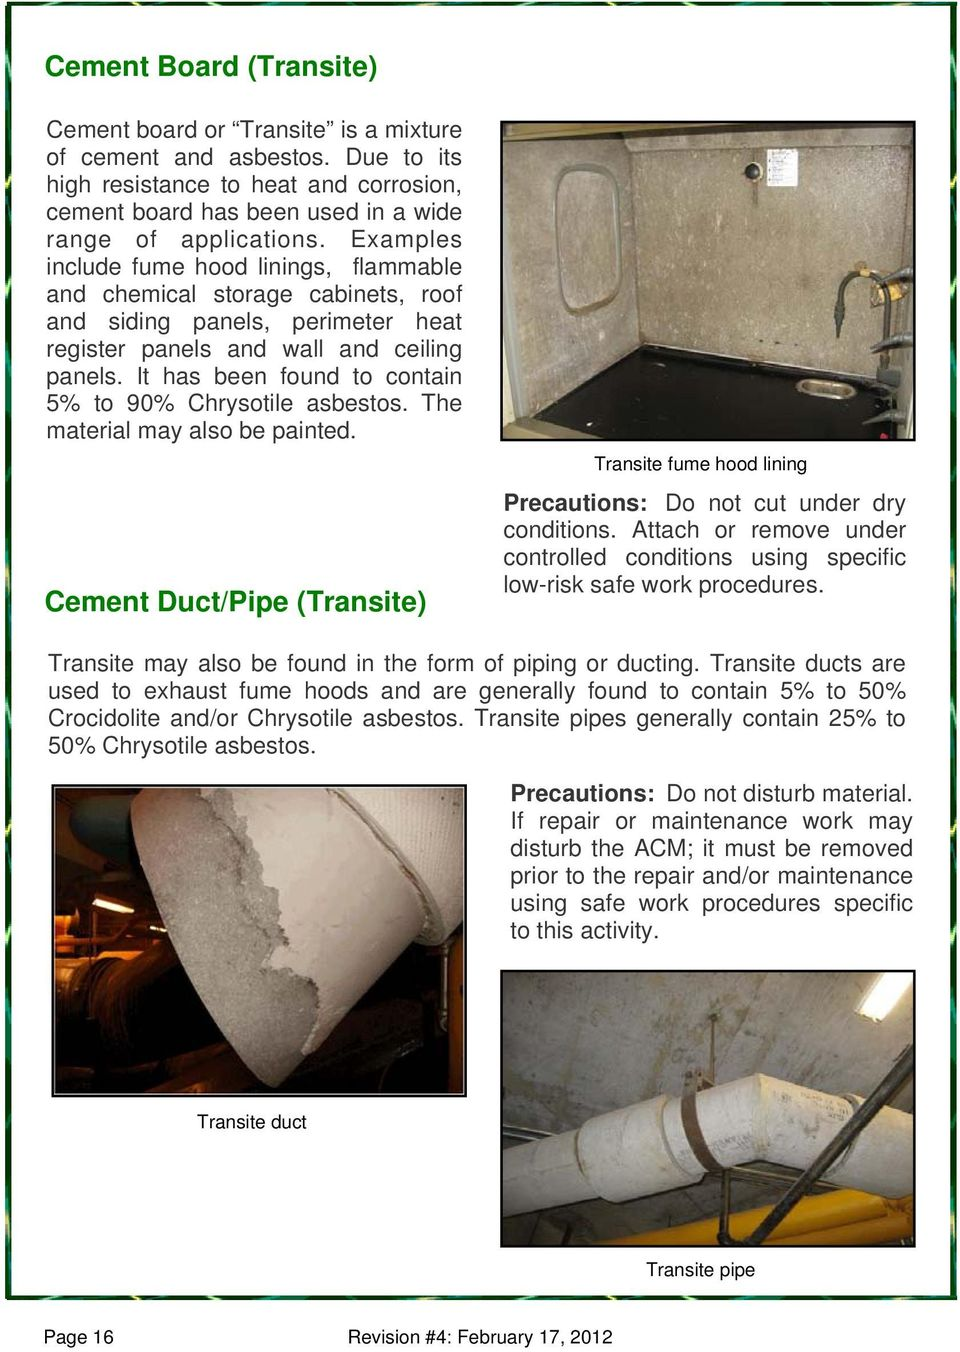 It has been found to contain 5% to 90% Chrysotile asbestos. The material may also be painted. Cement Duct/Pipe (Transite) Transite fume hood lining Precautions: Do not cut under dry conditions.